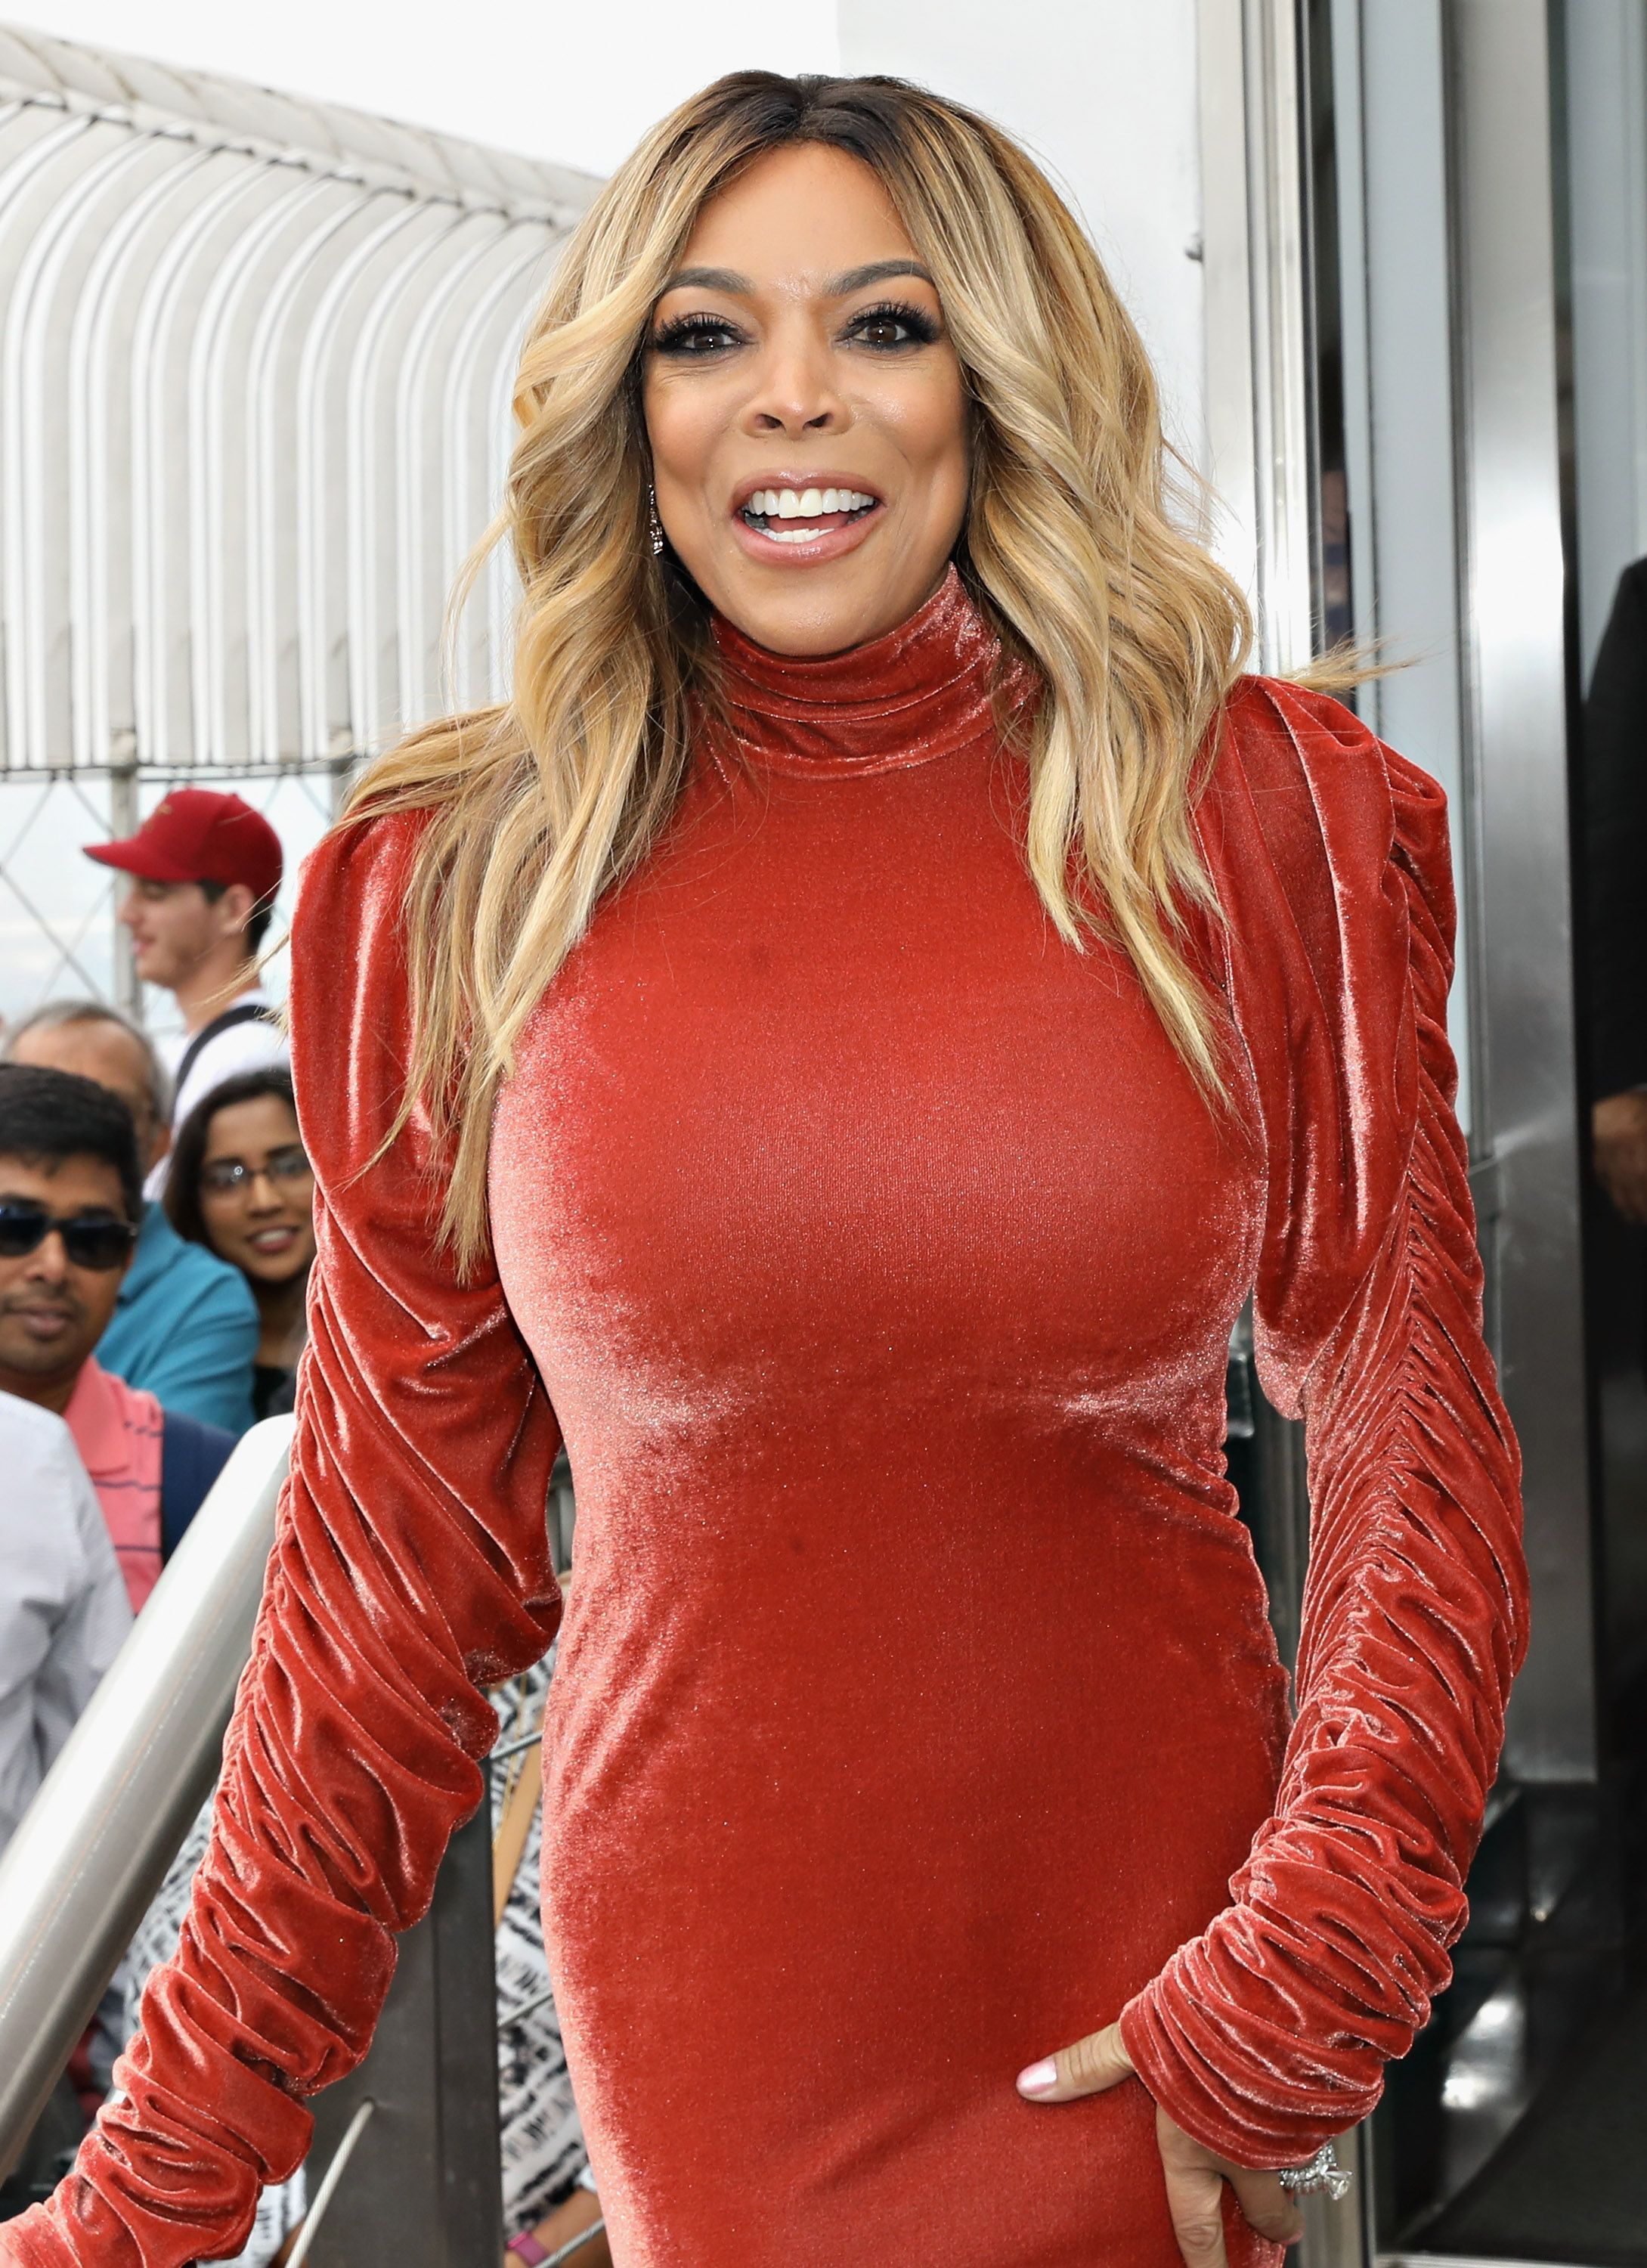 """Wendy Williams poses for a photo on the observation deck after taking part in the ceremonial lighting of the Empire State Building to celebrate the ninth season of """"The Wendy Williams Show"""" on September 18, 2017 